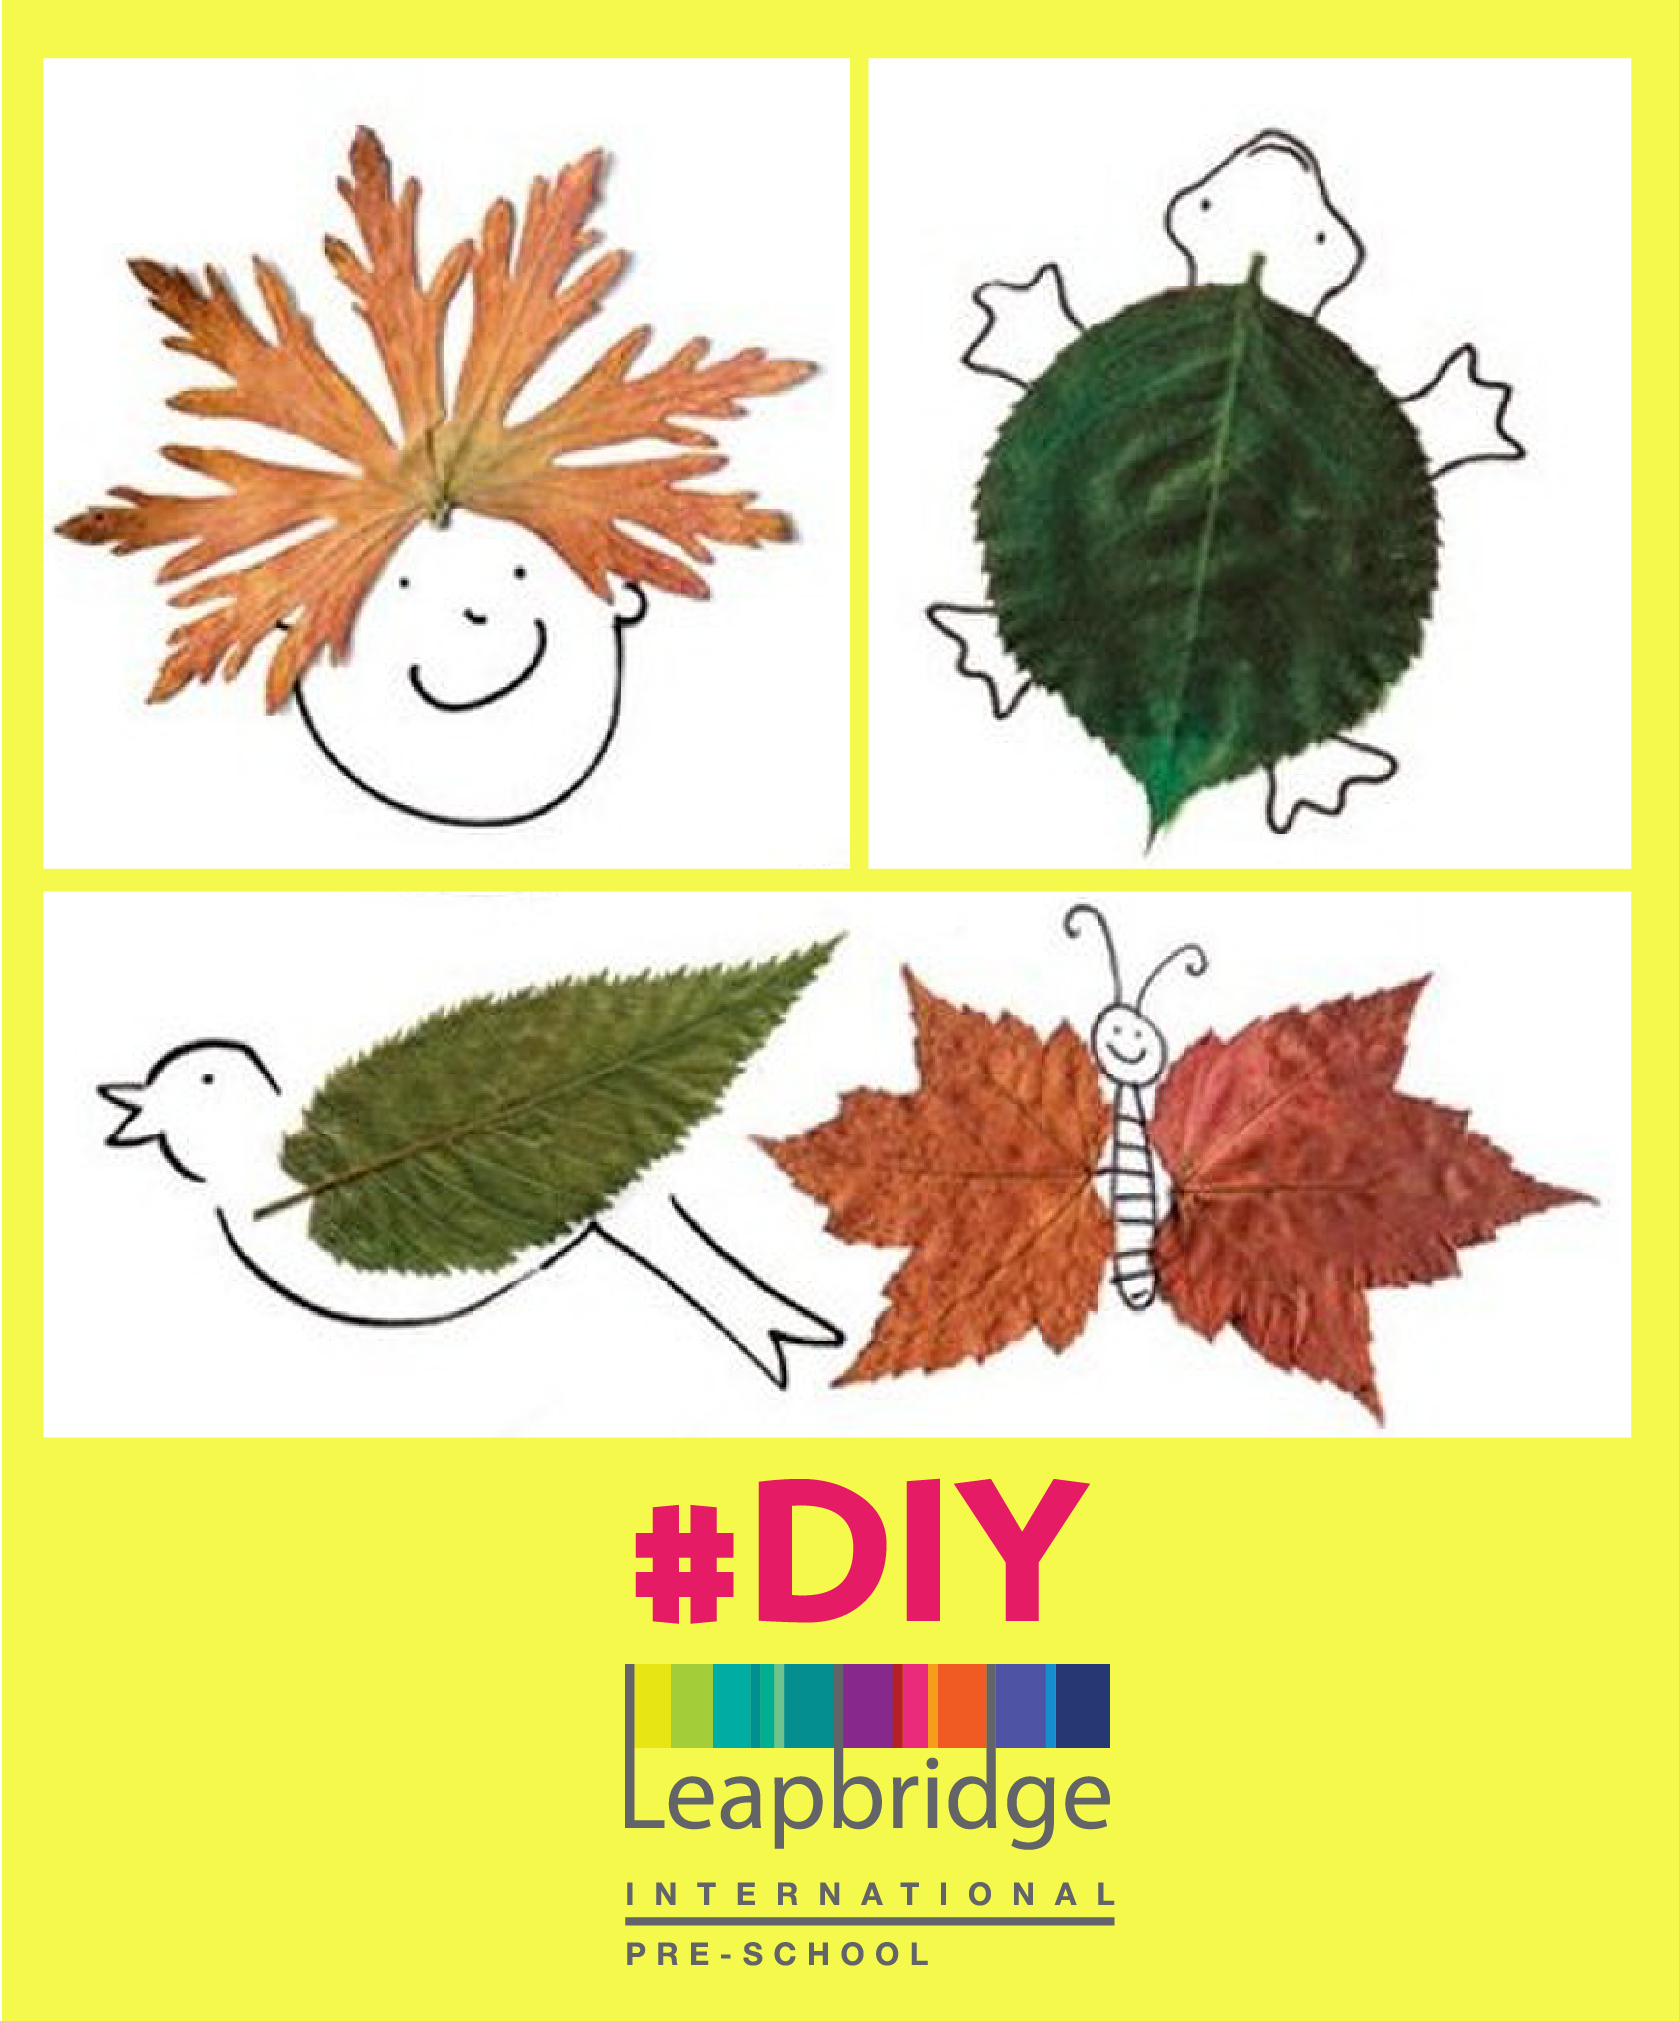 Have you seen a more creative use of leaves check out this do it have you seen a more creative use of leaves check out this do it yourself art and craft project how many parents want to try this with their kids solutioingenieria Choice Image